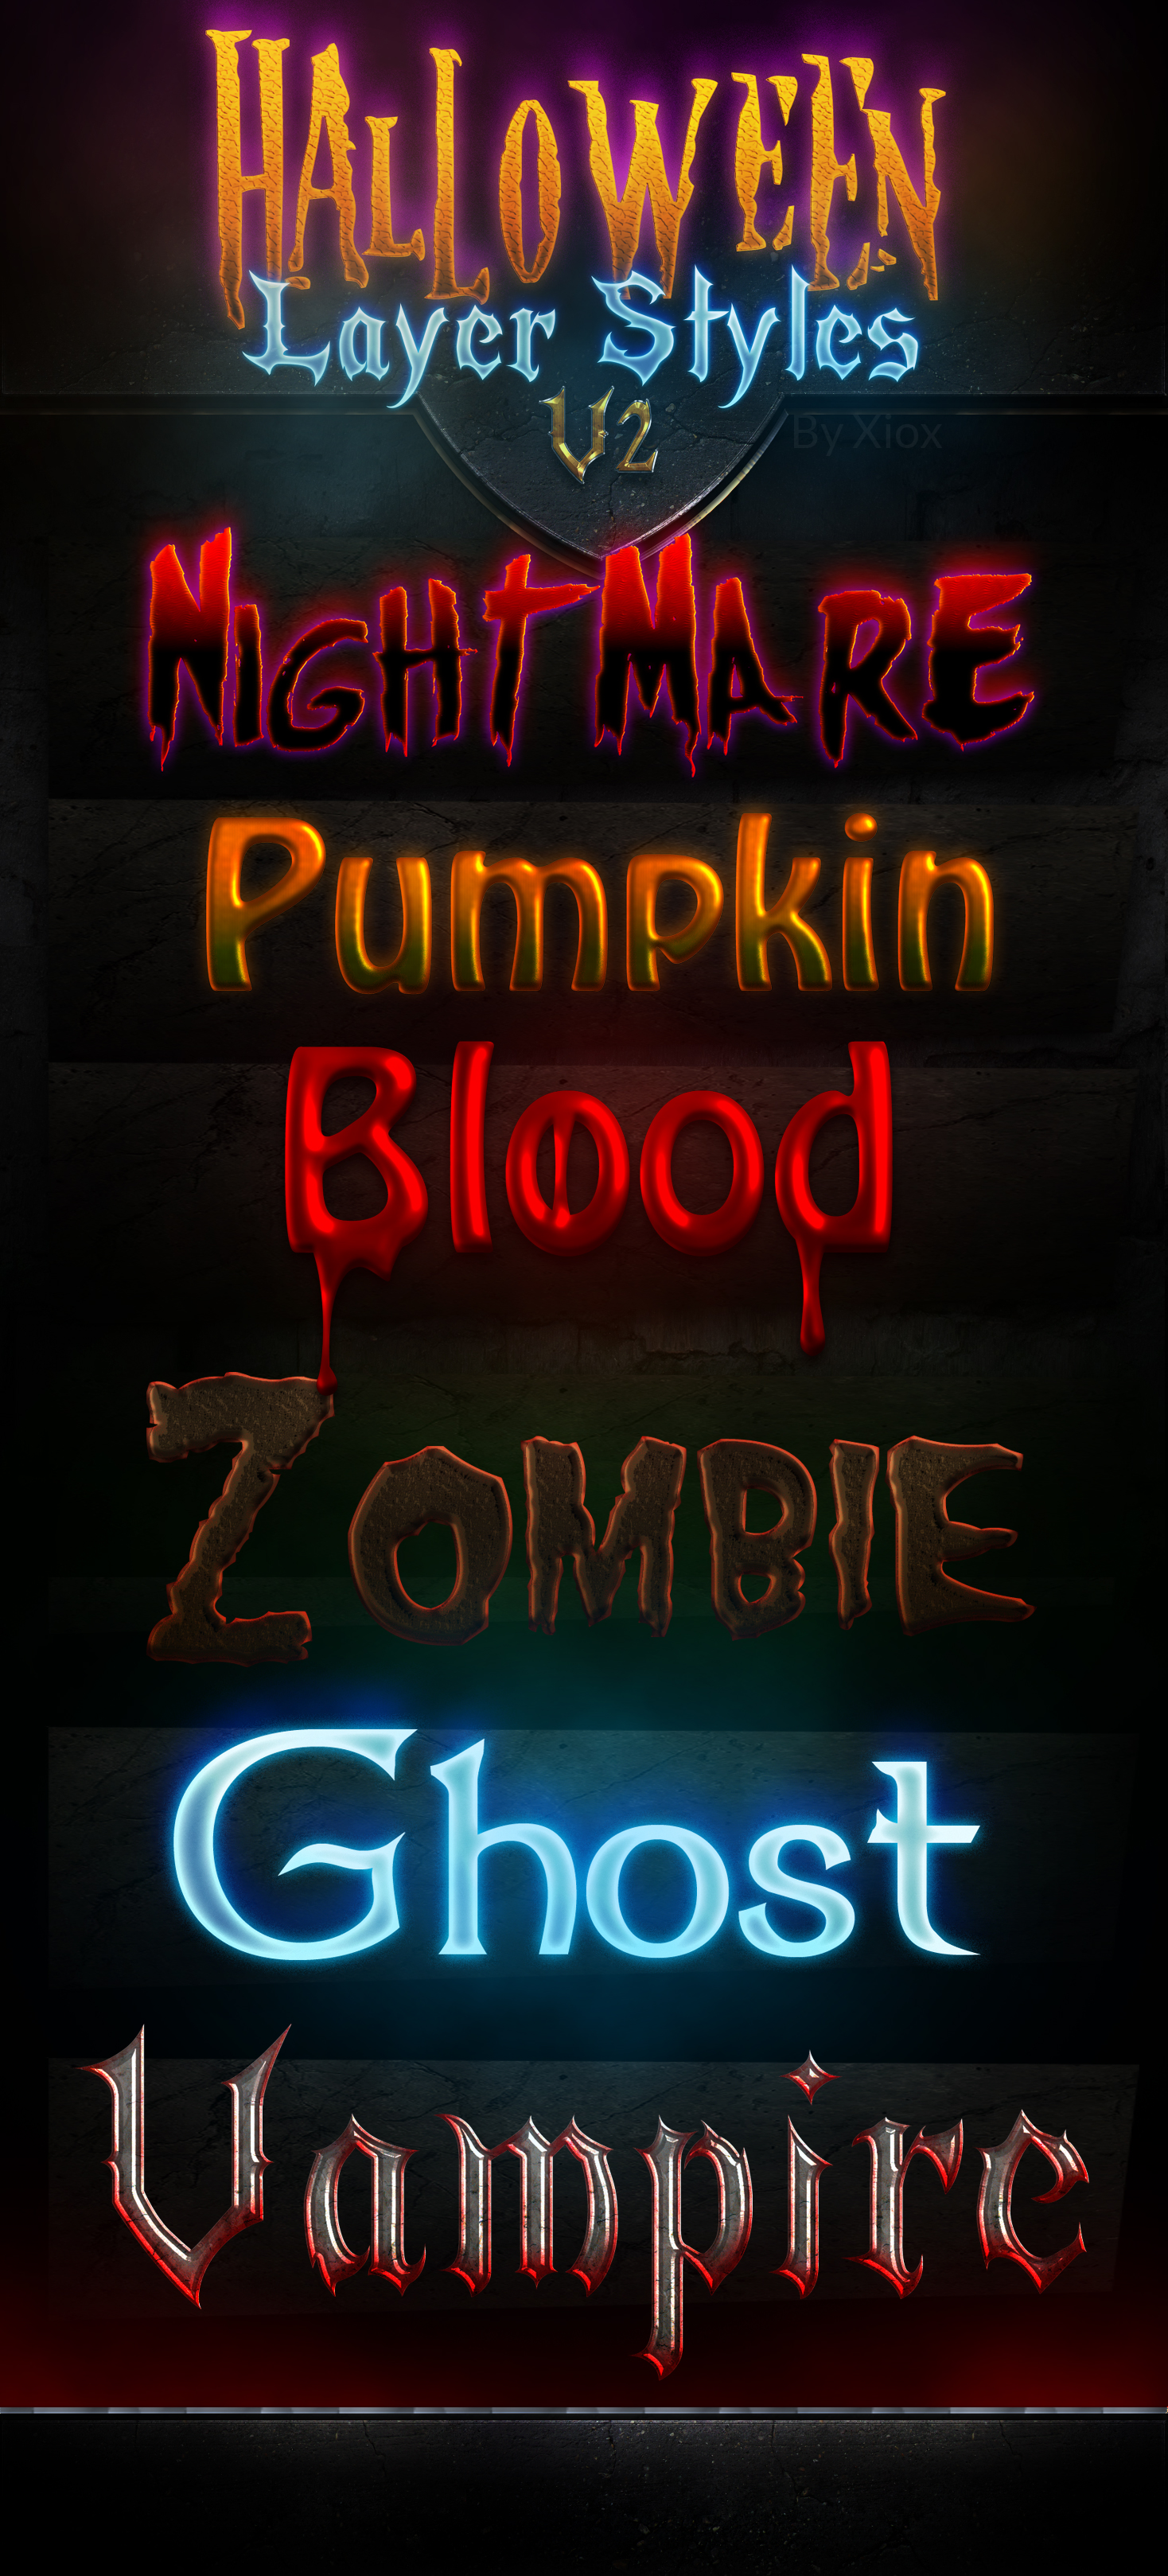 6 Free Halloween Photoshop Text Effects